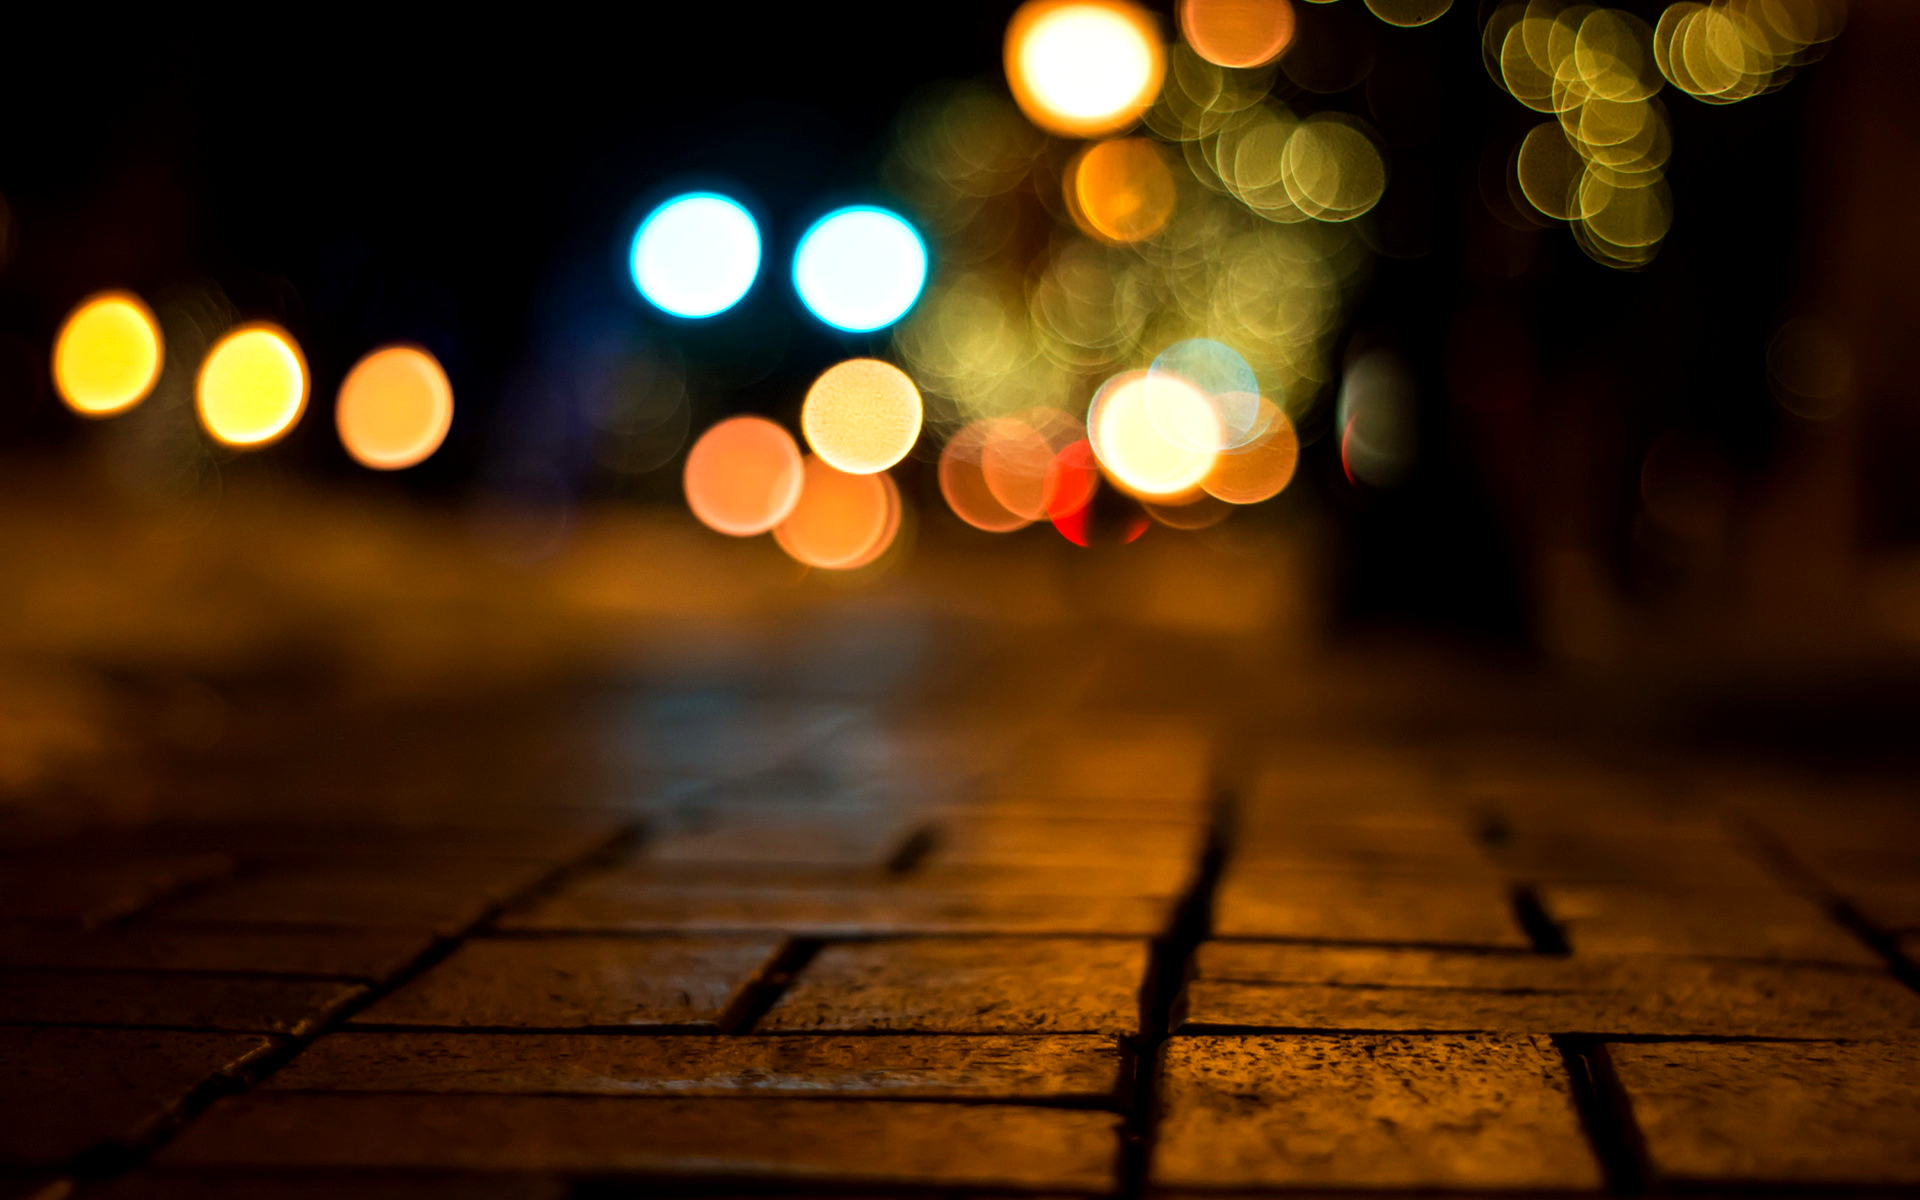 Bokeh Wallpapers HD Pictures One HD Wallpaper Pictures Backgrounds 1920x1200